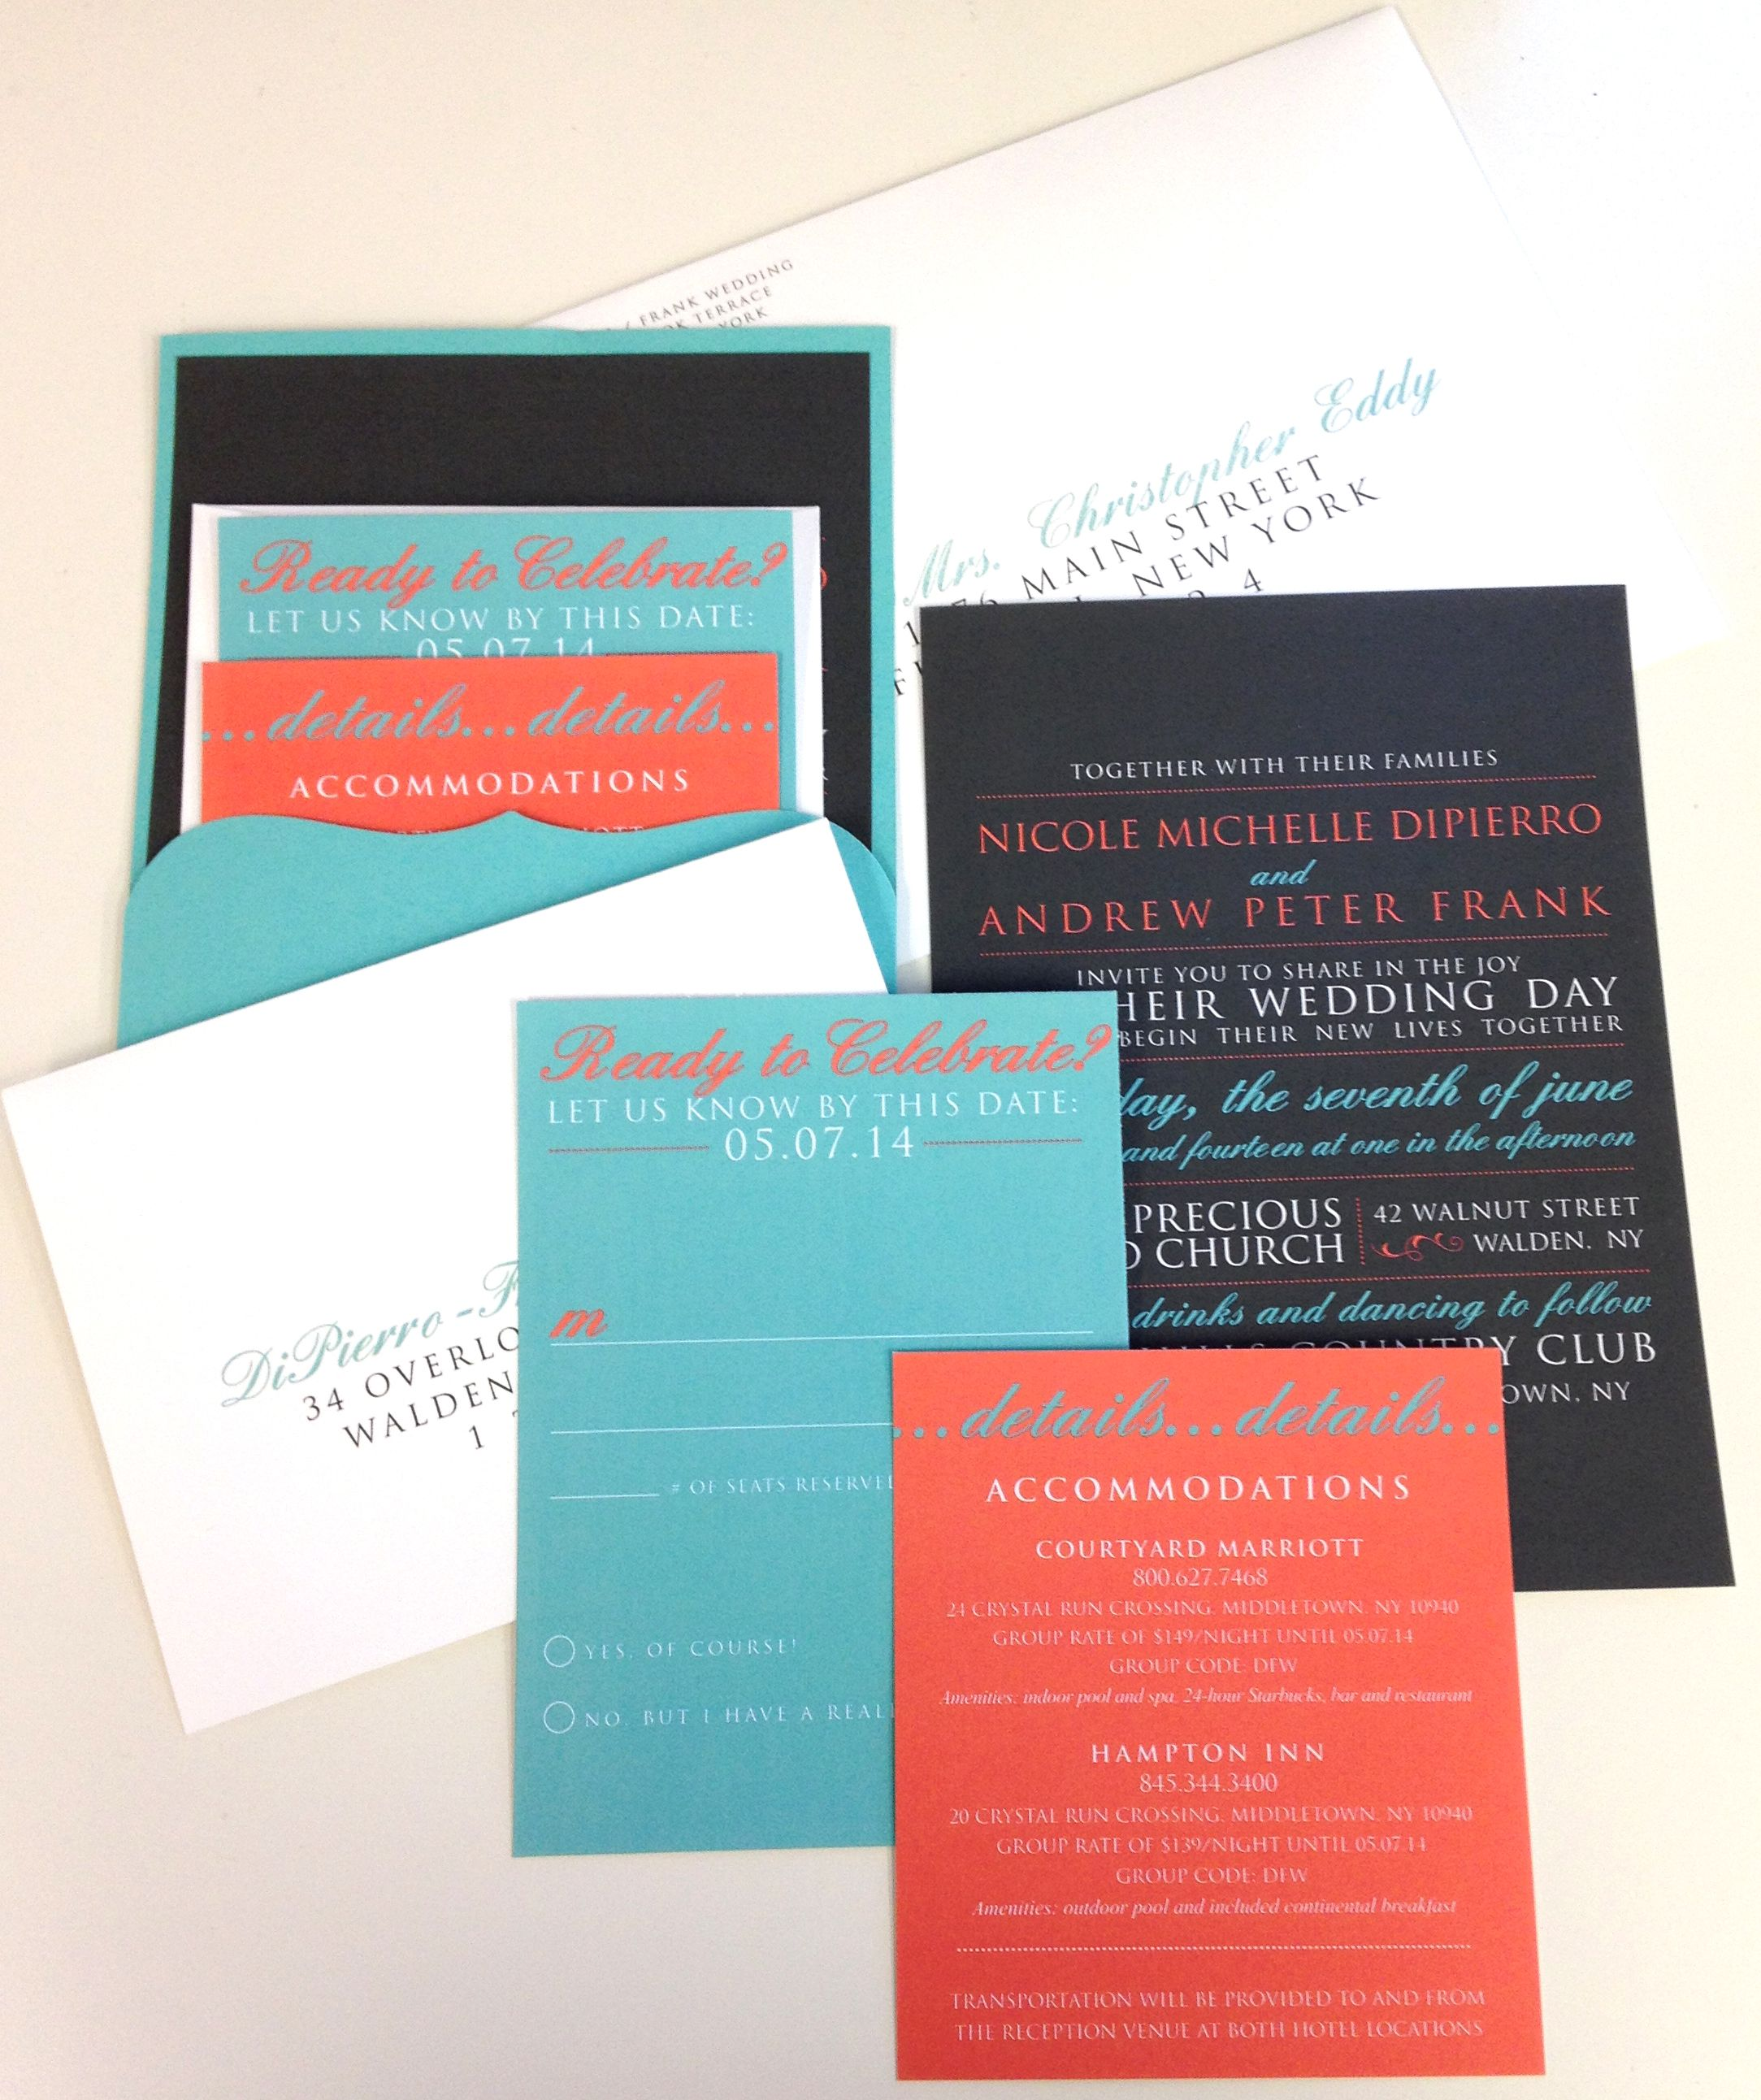 Tiffany Blue Coral And Charcoal Grey Invite With Card Holder Love